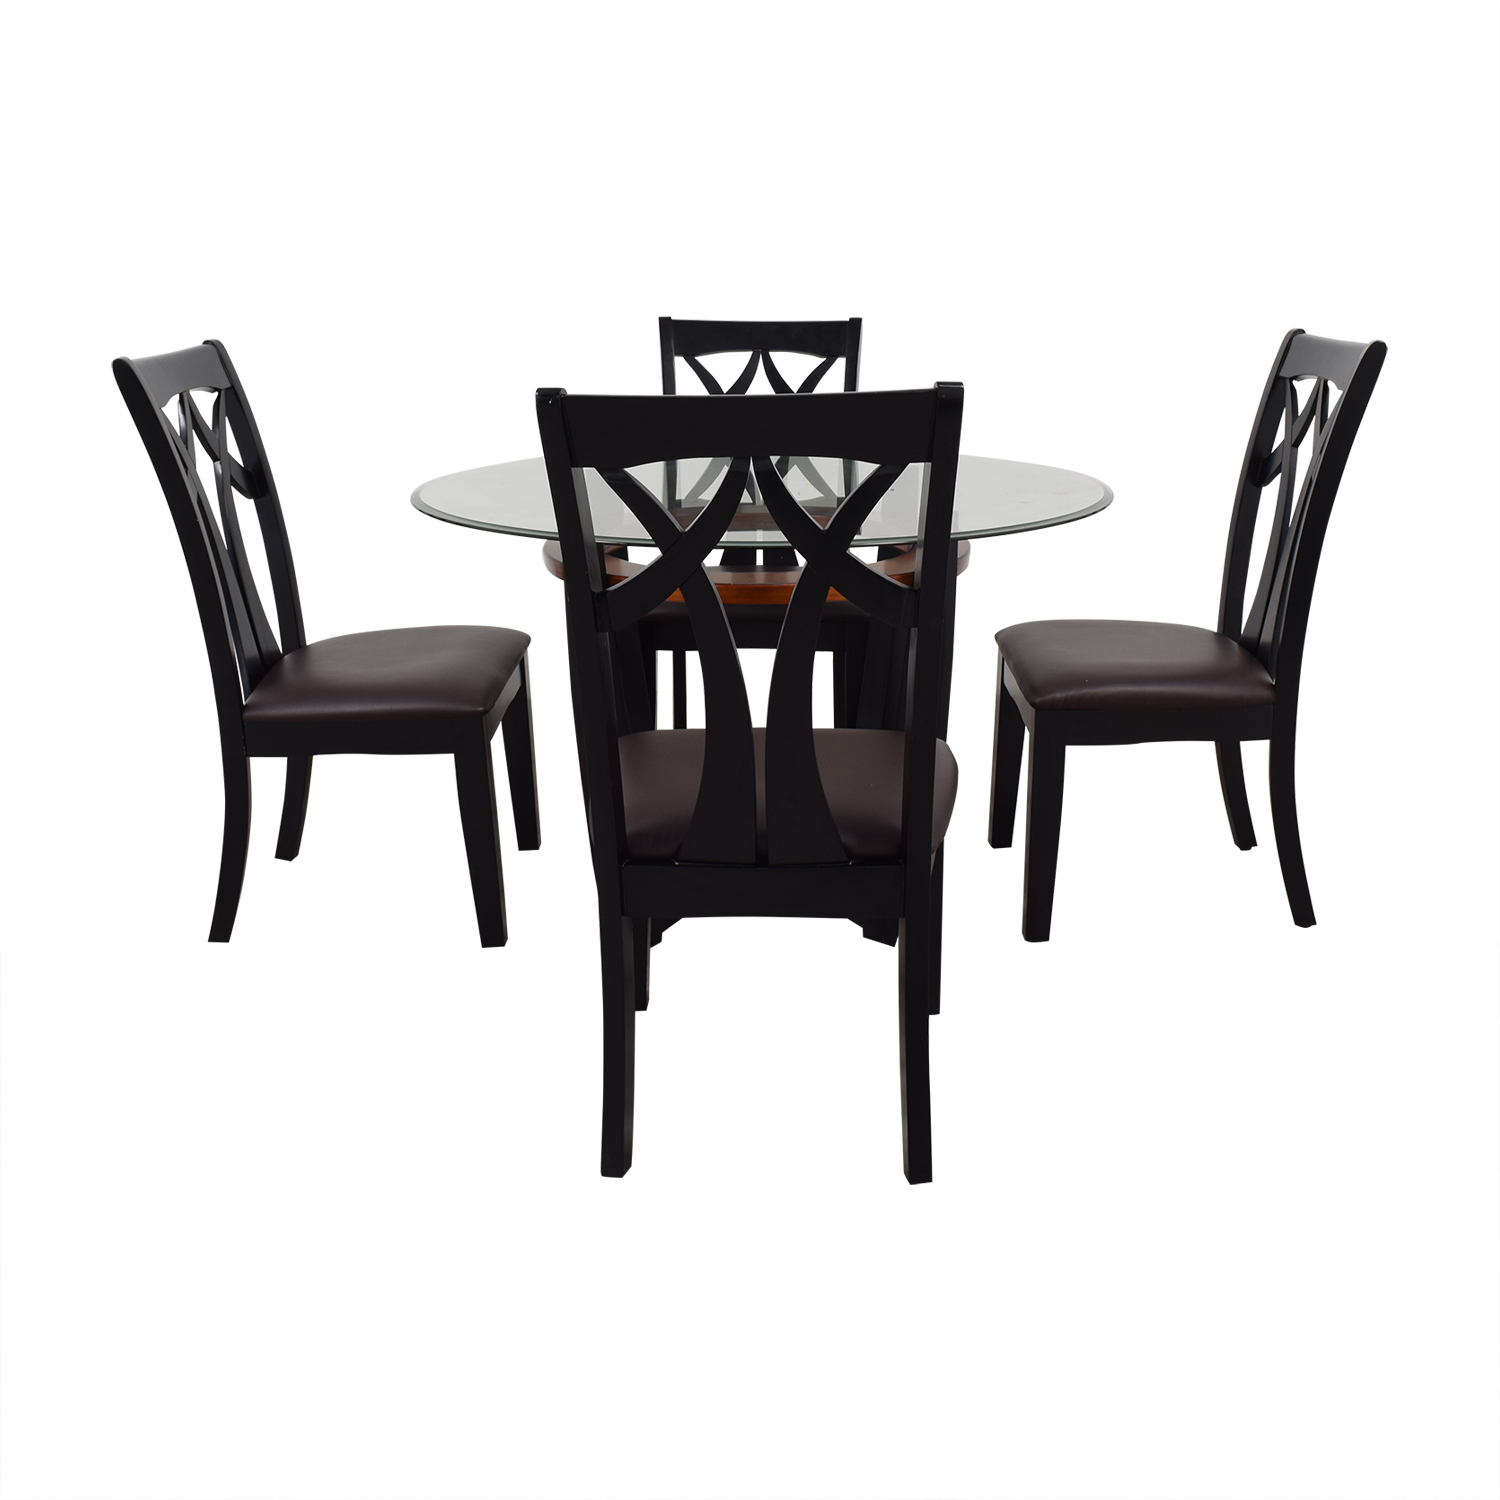 Raymour & Flanigan Raymour & Flanigan Wood and Glass Dining Set used